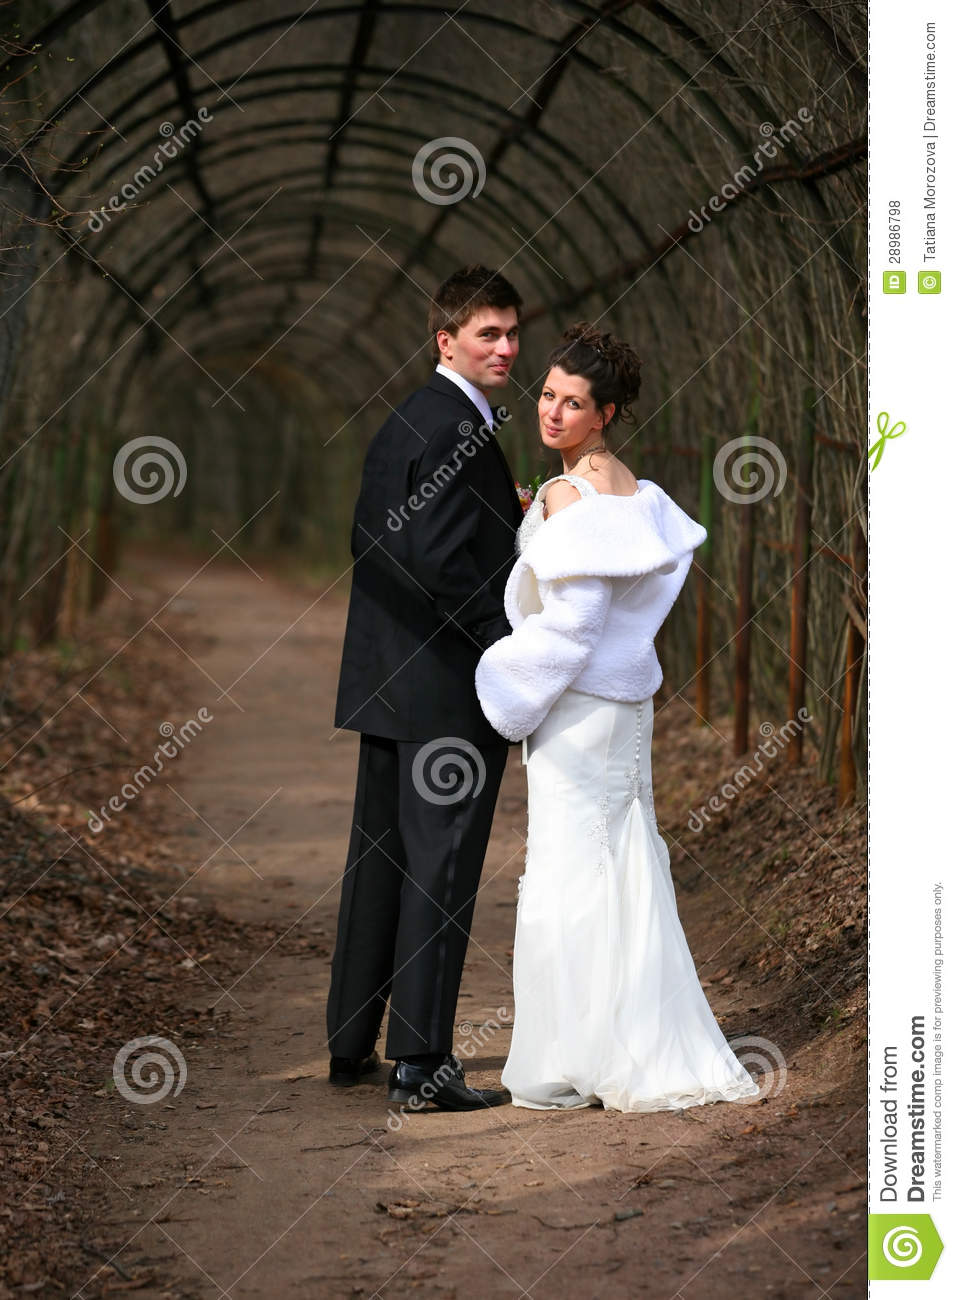 Newly married couple royalty free stock photos image 28986798